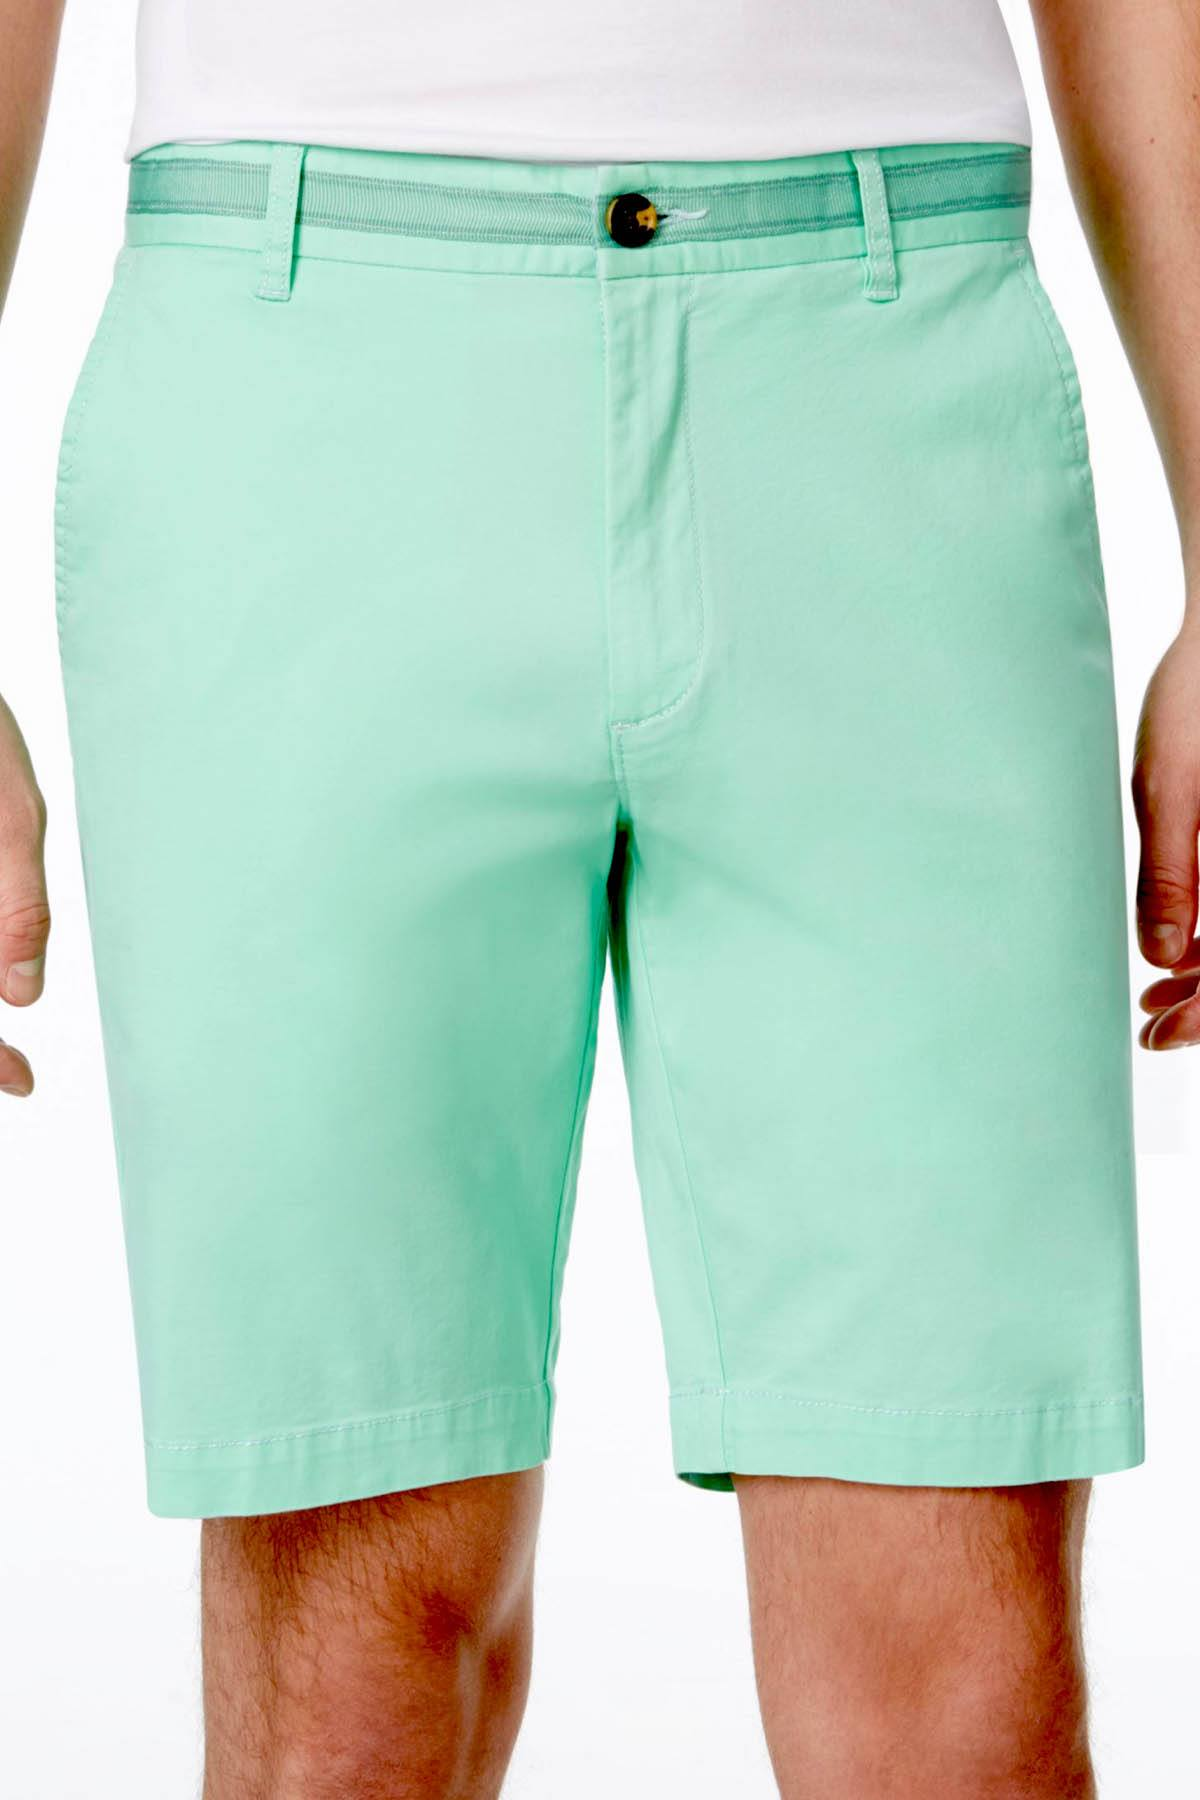 Club Room Neptune Beso Stretch Short